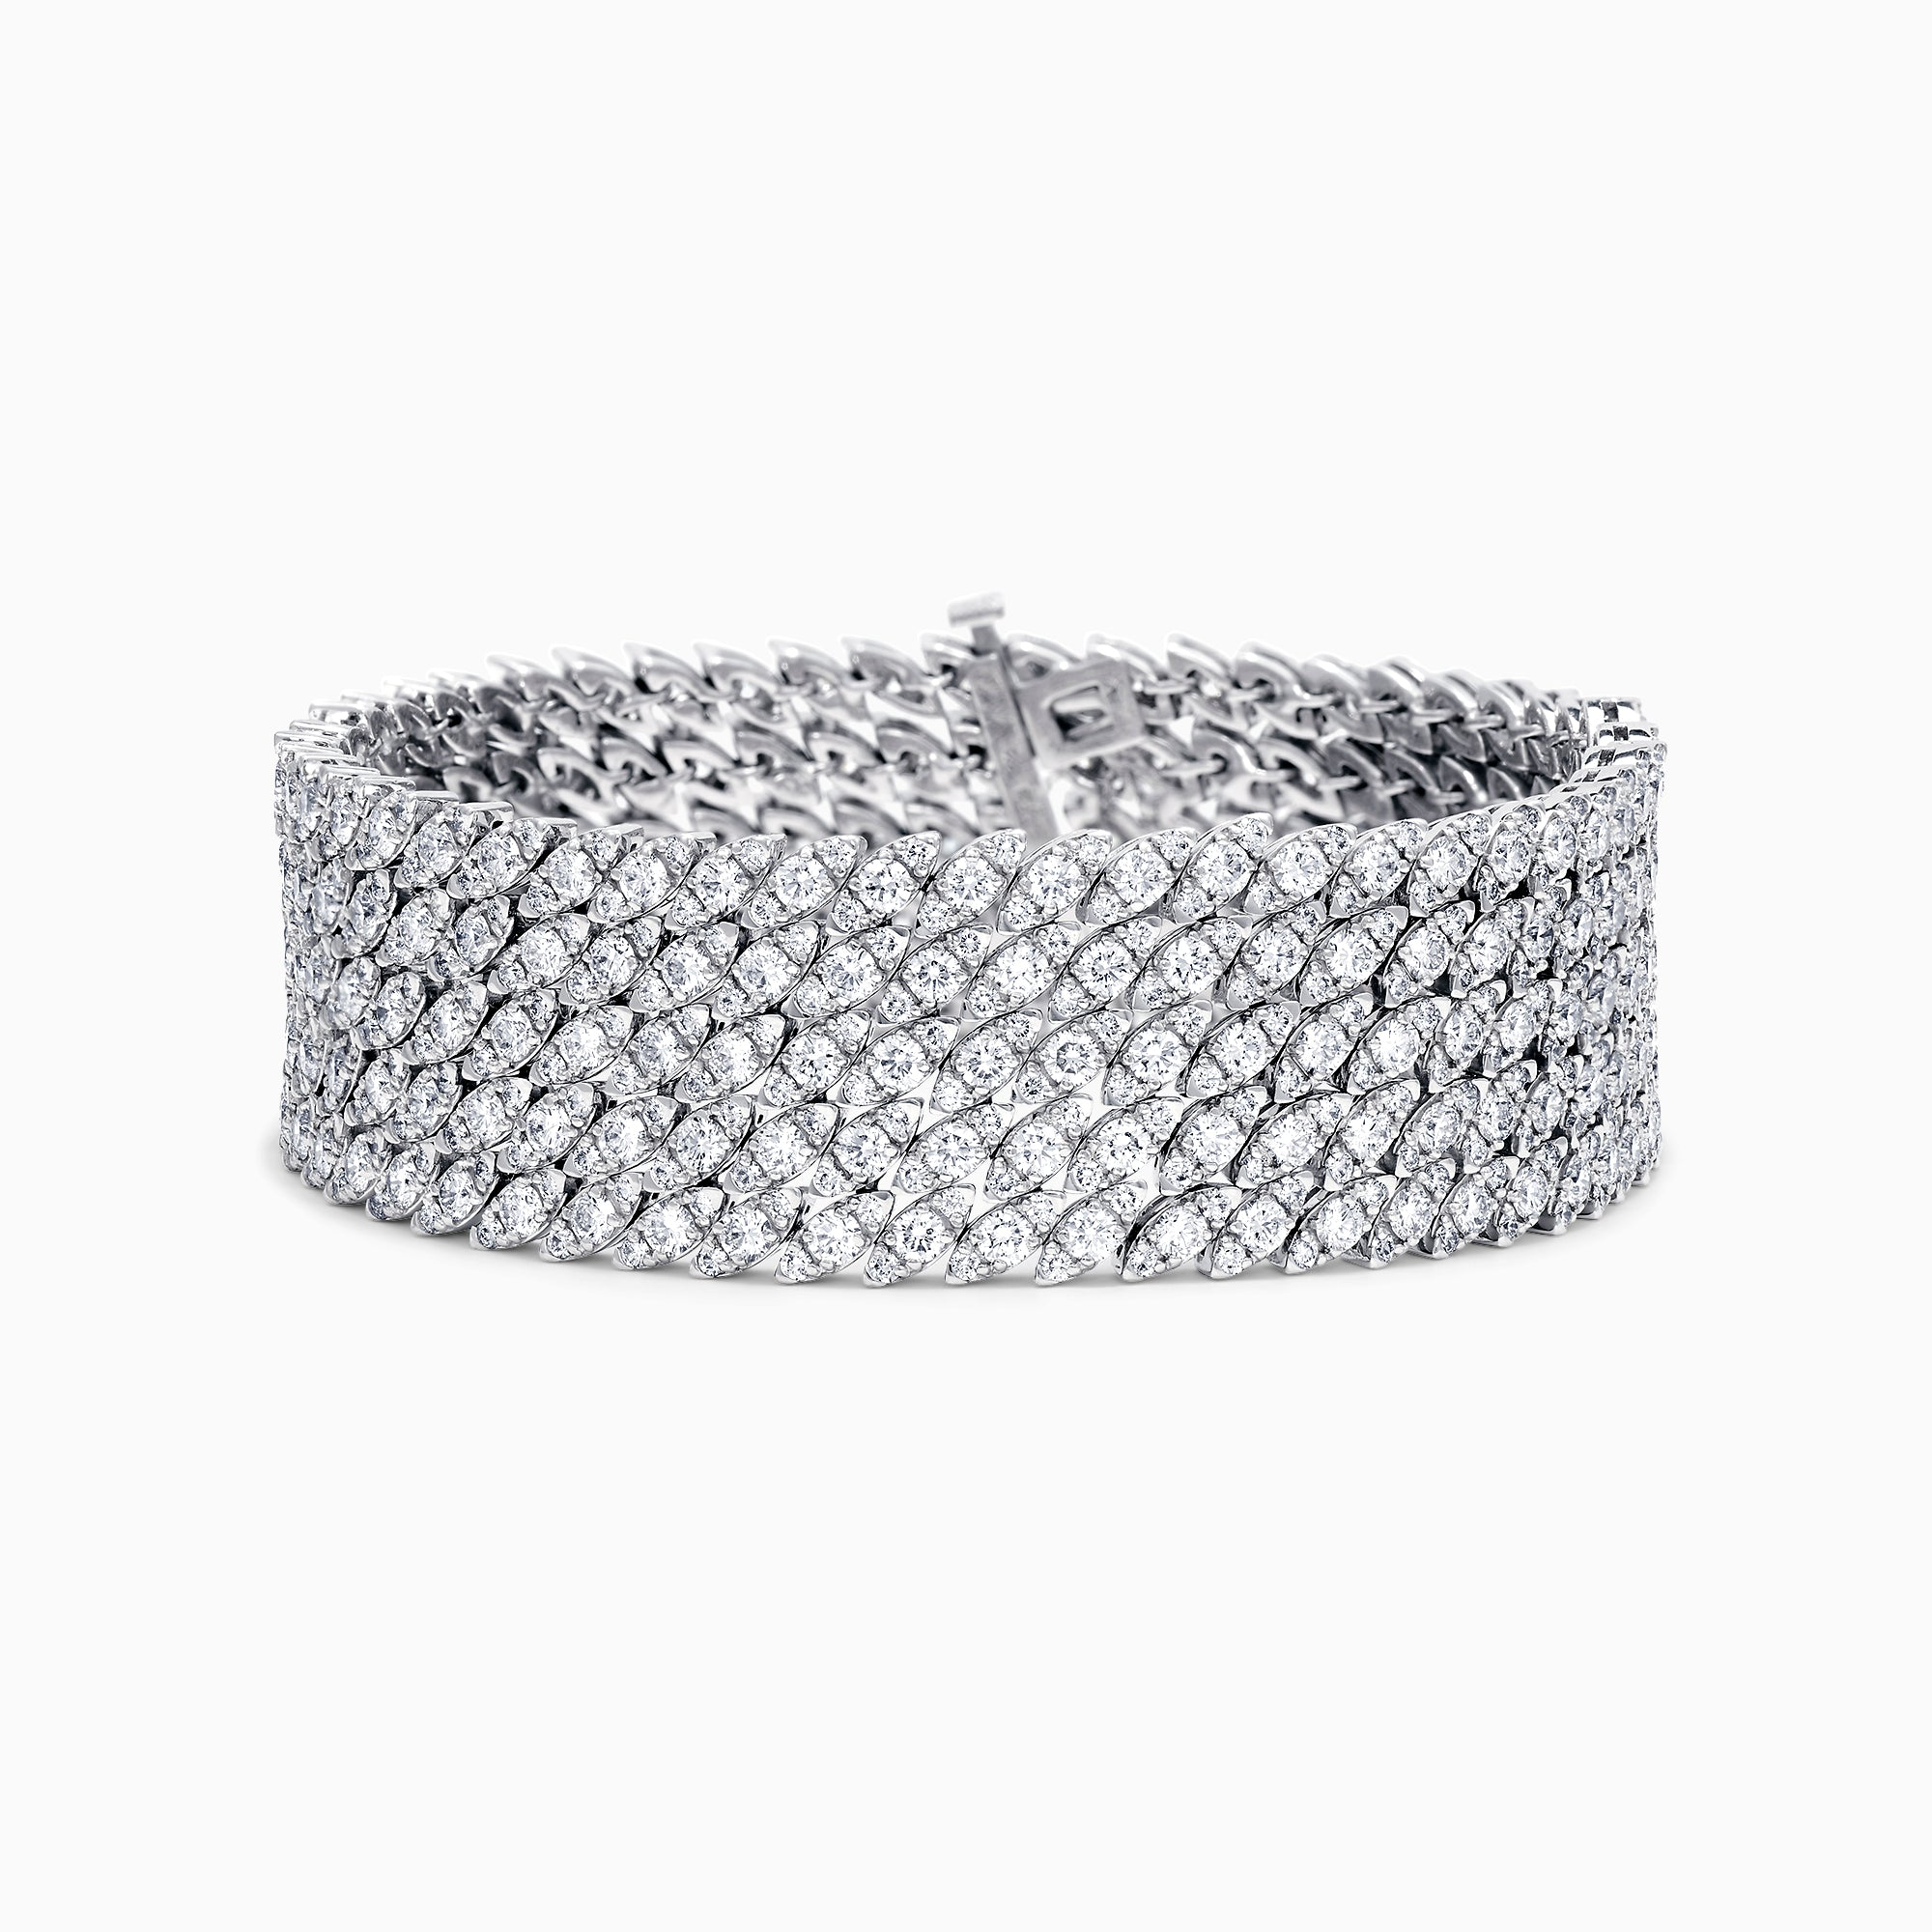 Effy Hematian 18K White Gold Wide Diamond Bracelet, 18.10 TCW